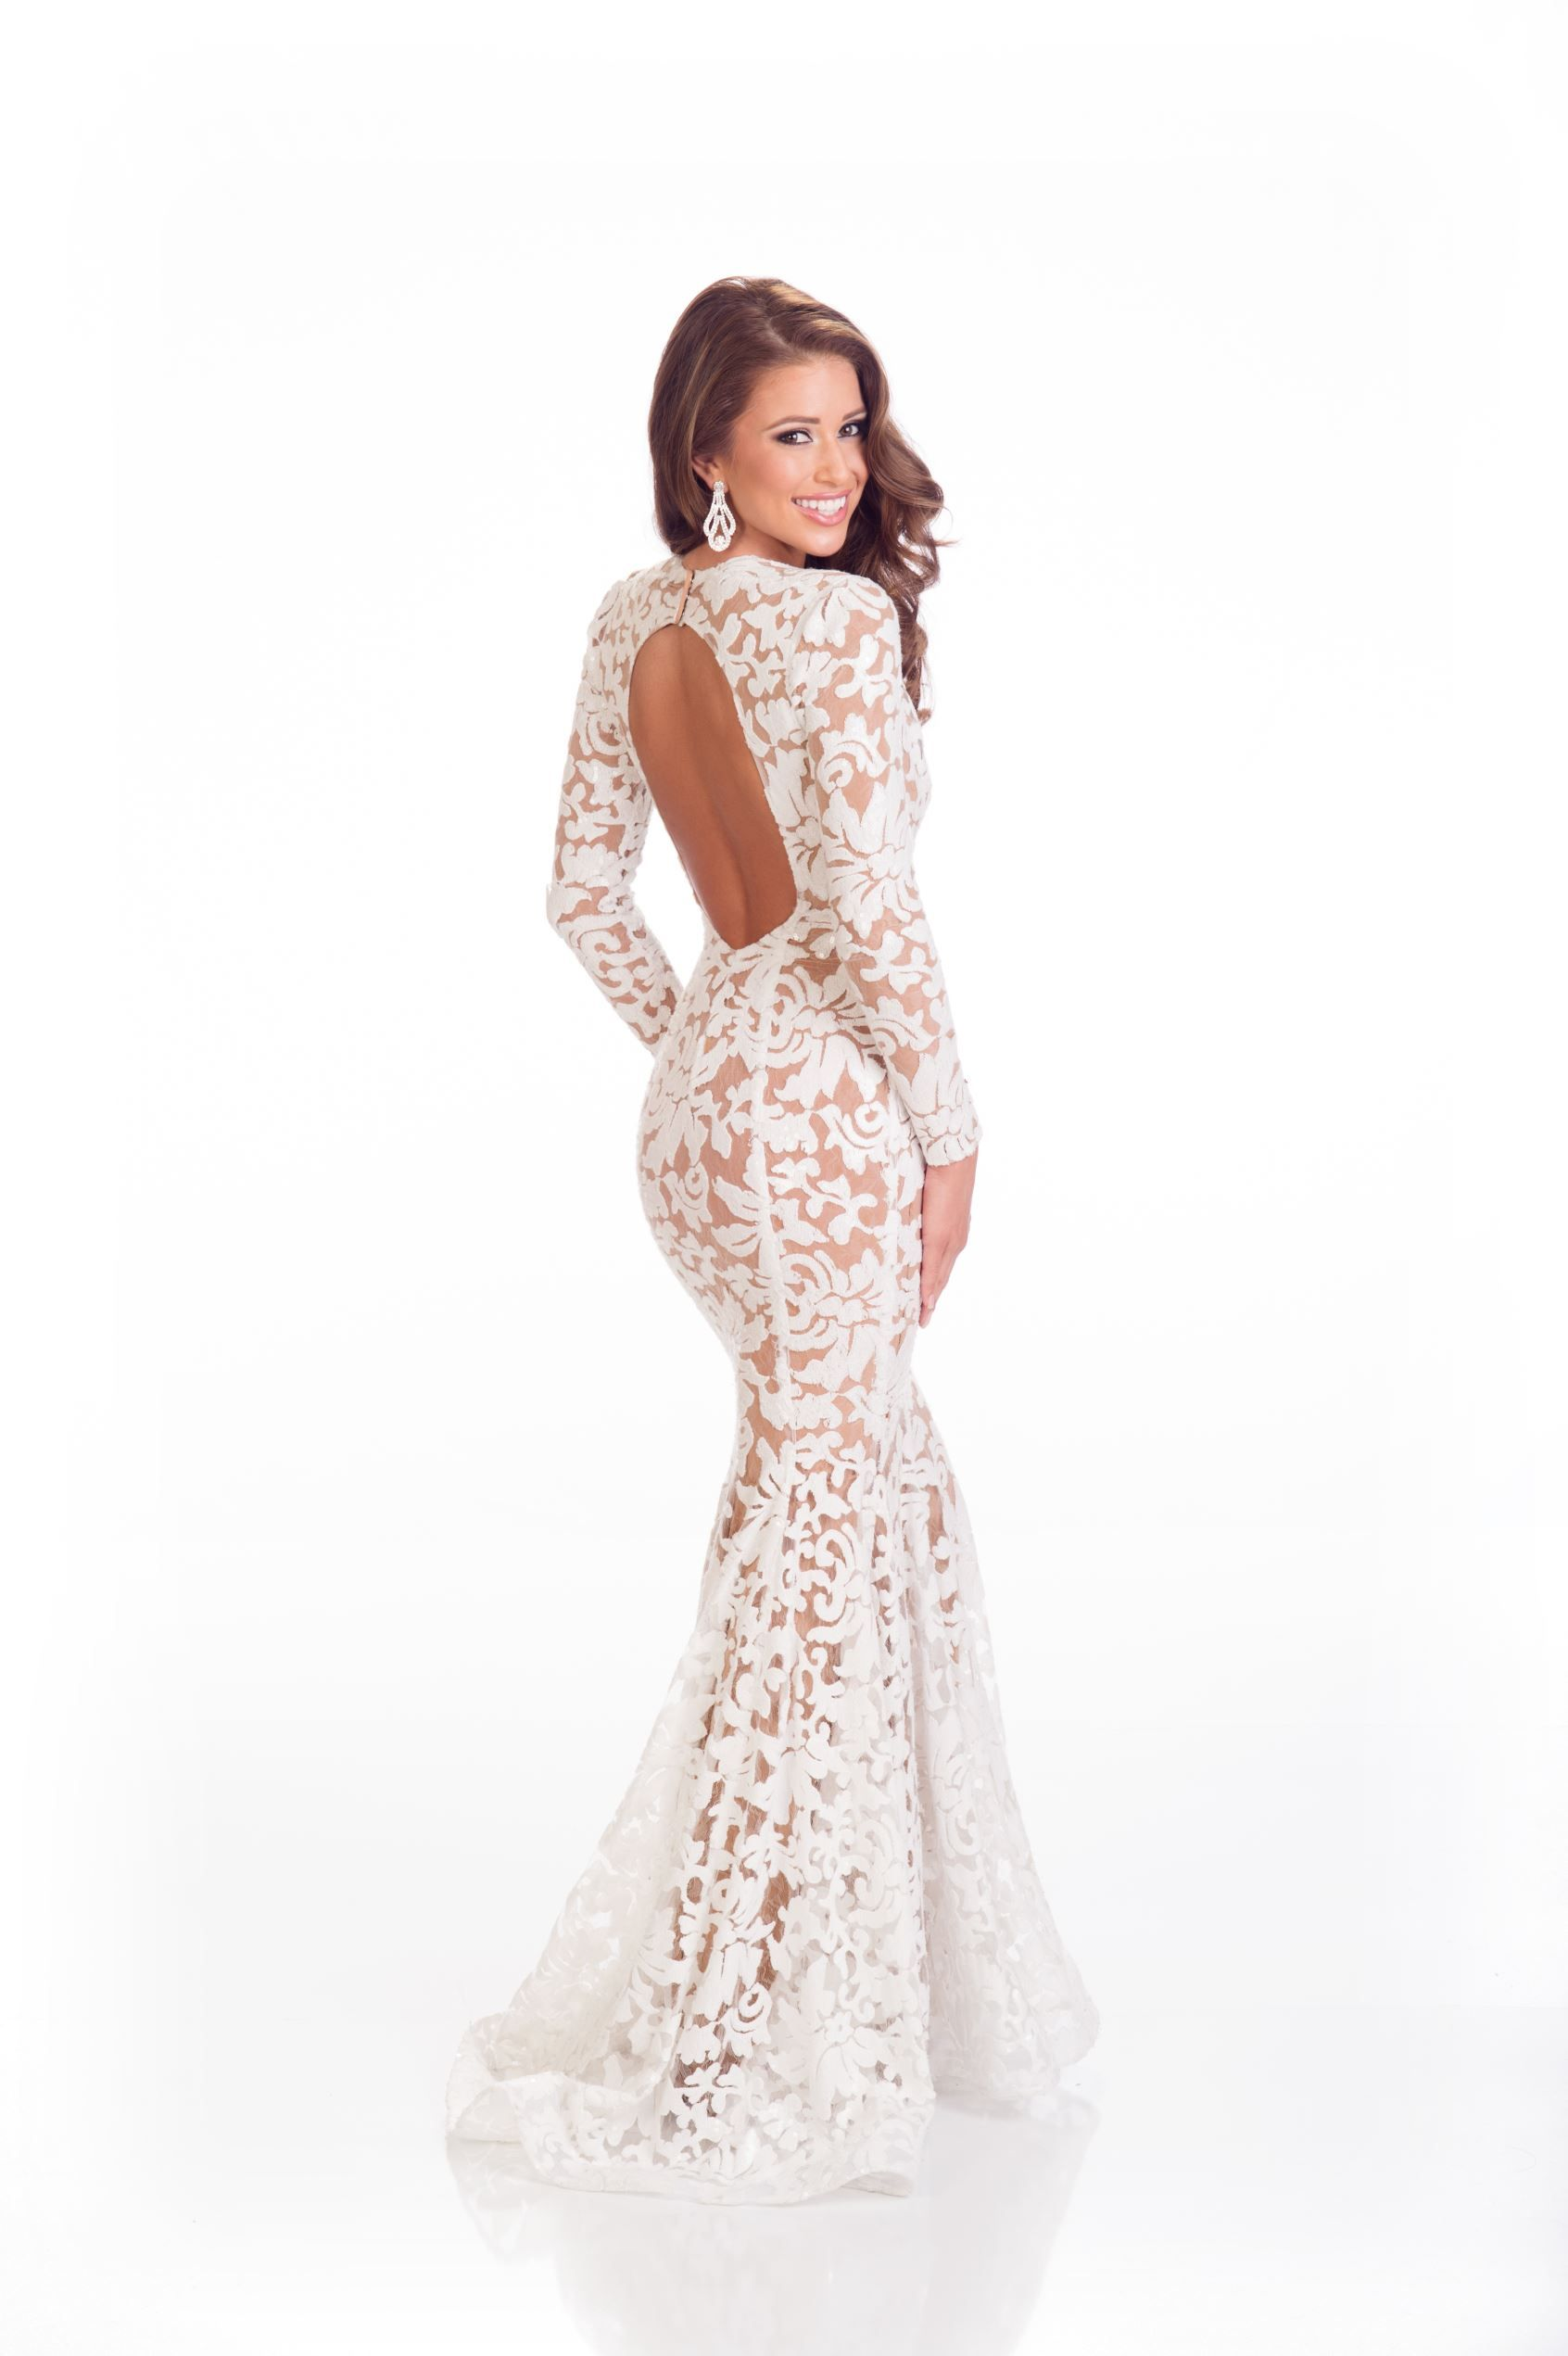 The beautiful Nia Sanchez, Miss USA, is all glam in her white lace ...